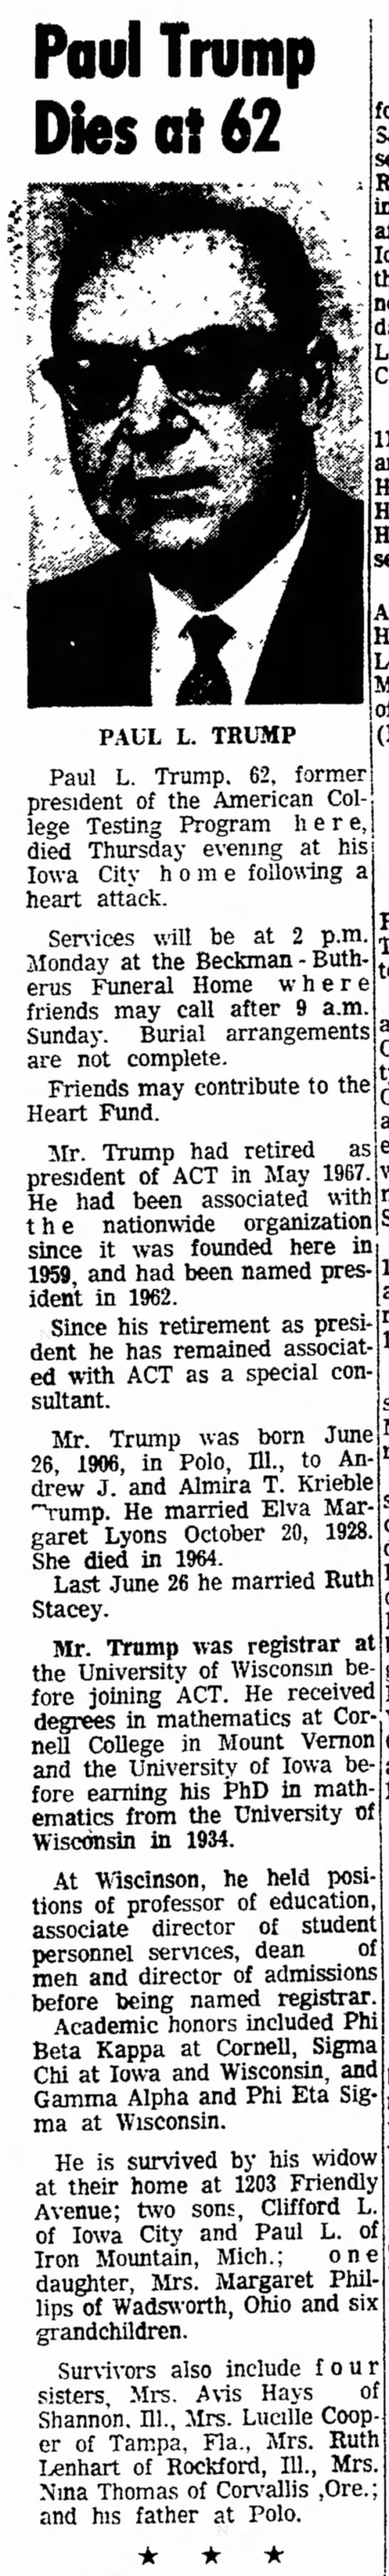 Paul L Trump obituary